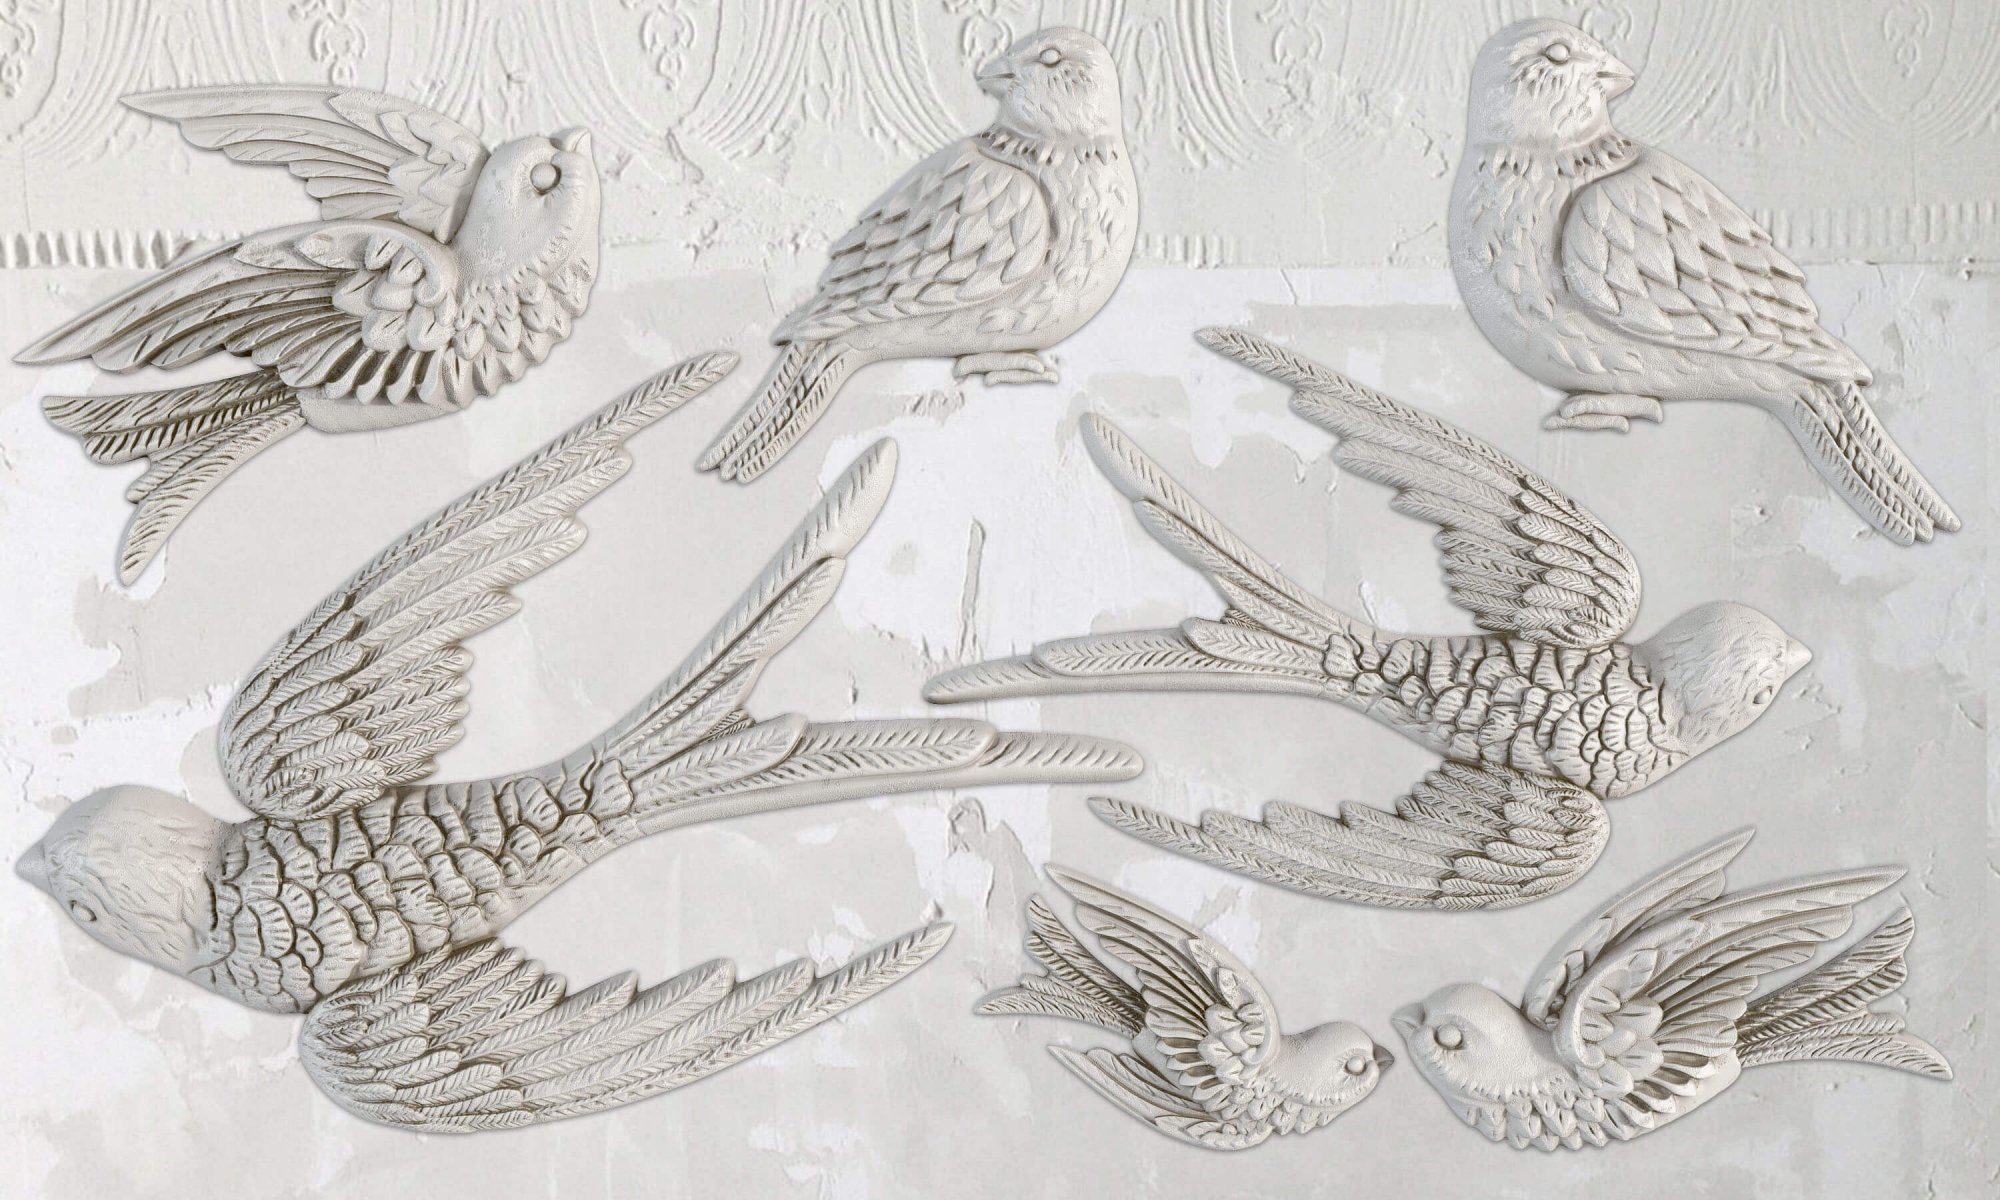 Birdsong 6x10 IOD Decor Moulds